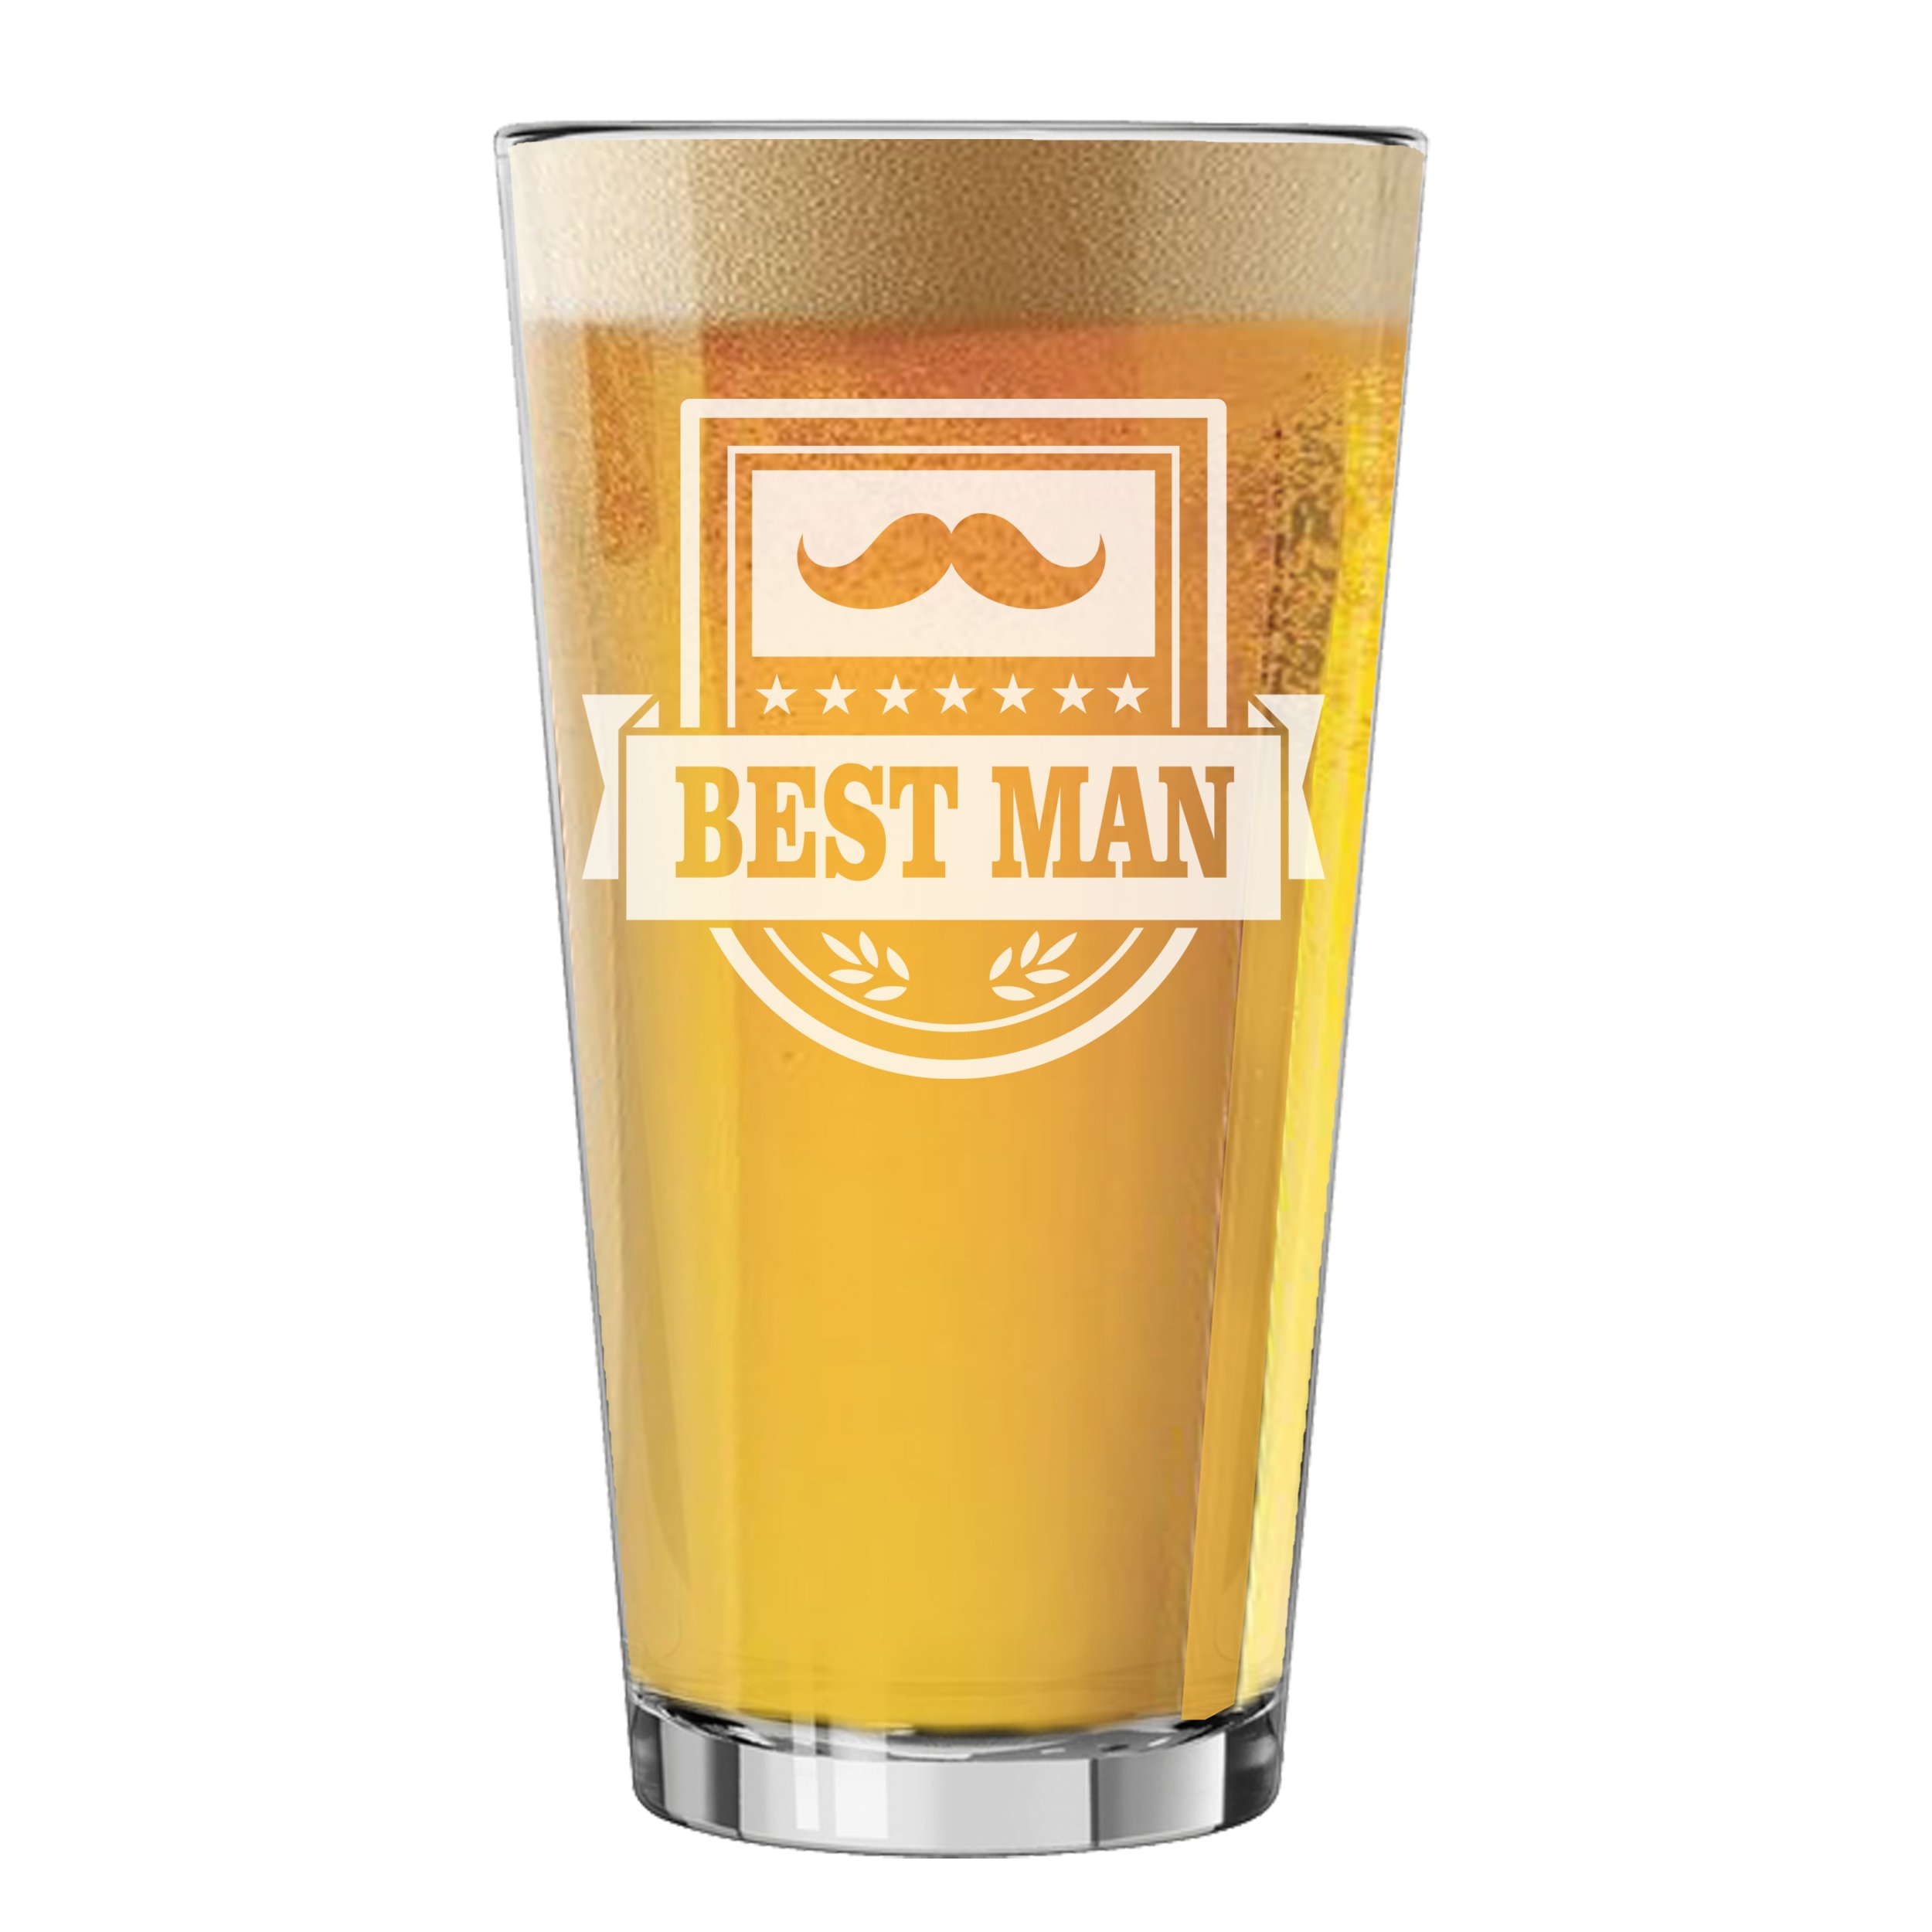 Pint Glasses for Bachelor Party, Weddings, Wedding Favors, Beer Gifts (Badge Style 16oz, Best Man Glass)